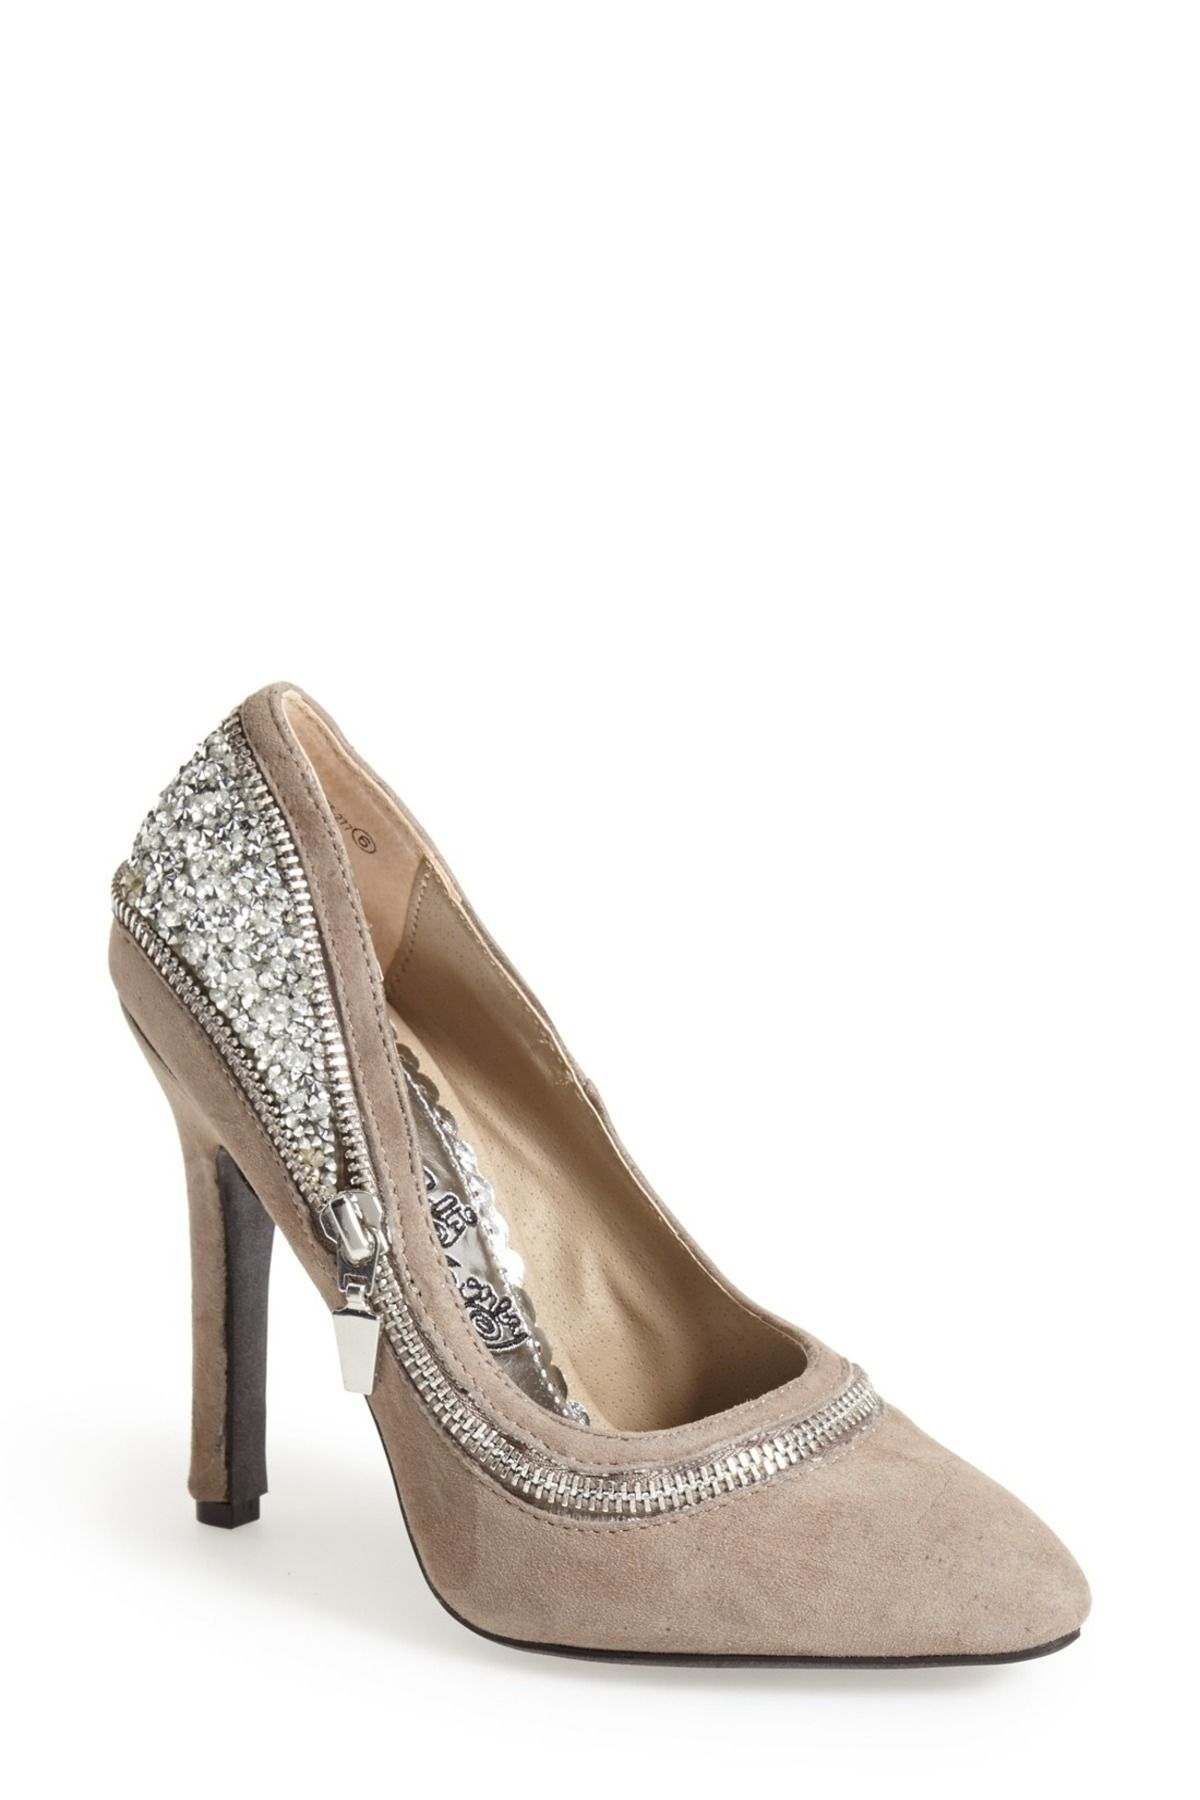 'All I Want Is You' Glitter Back Pump by NAUGHTY MONKEY on @HauteLook